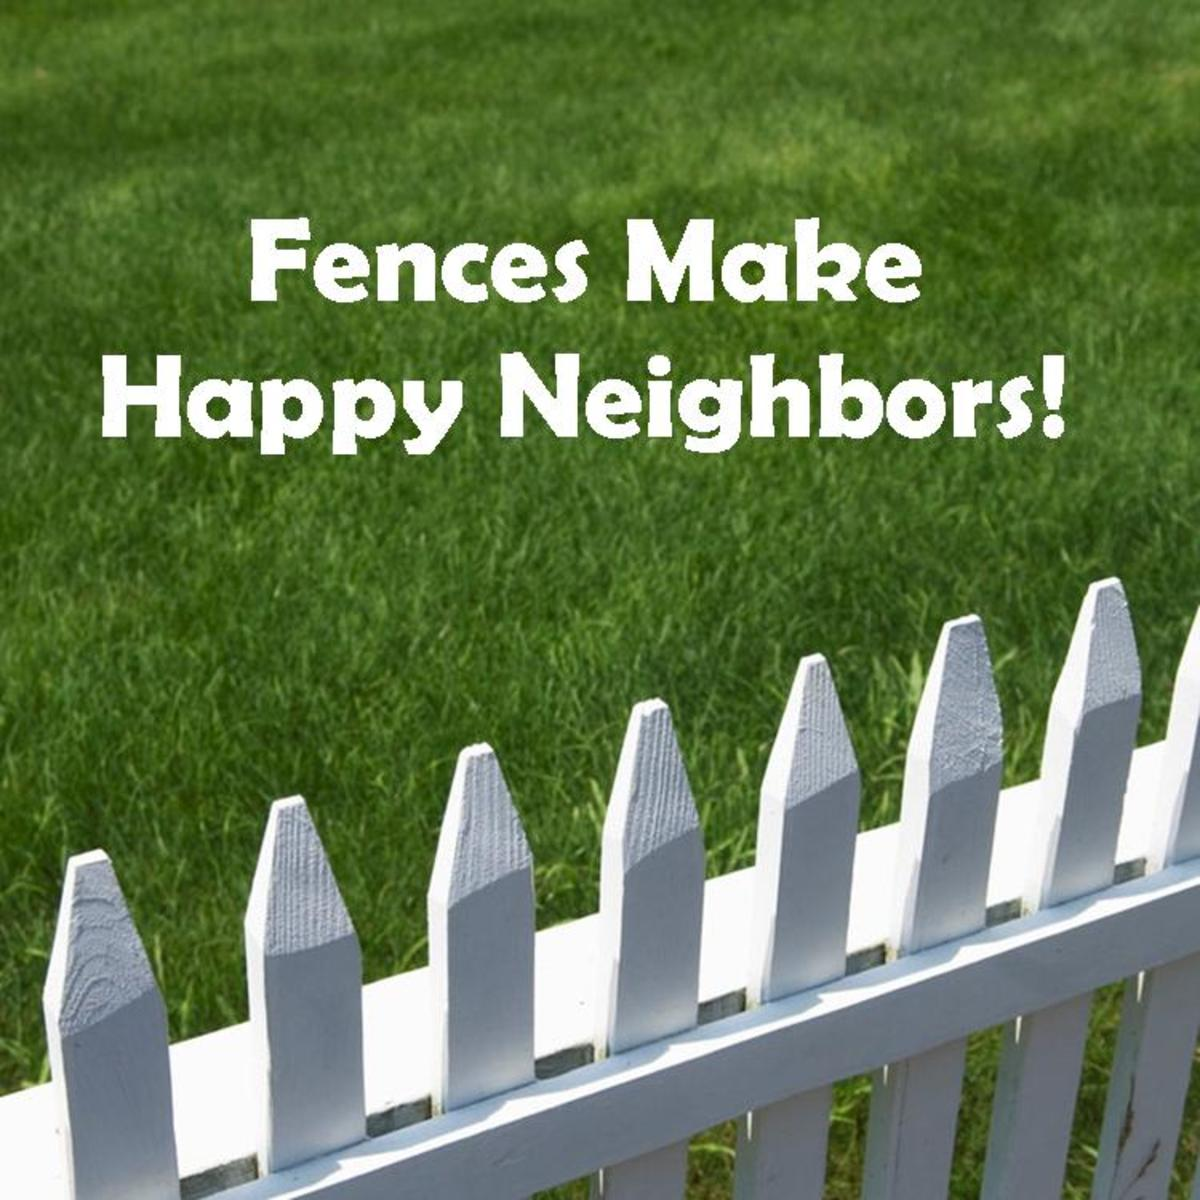 Whether it's their dog, your kid, their lawnmower, or your trash.  A fence helps clear up who's responsible for what.